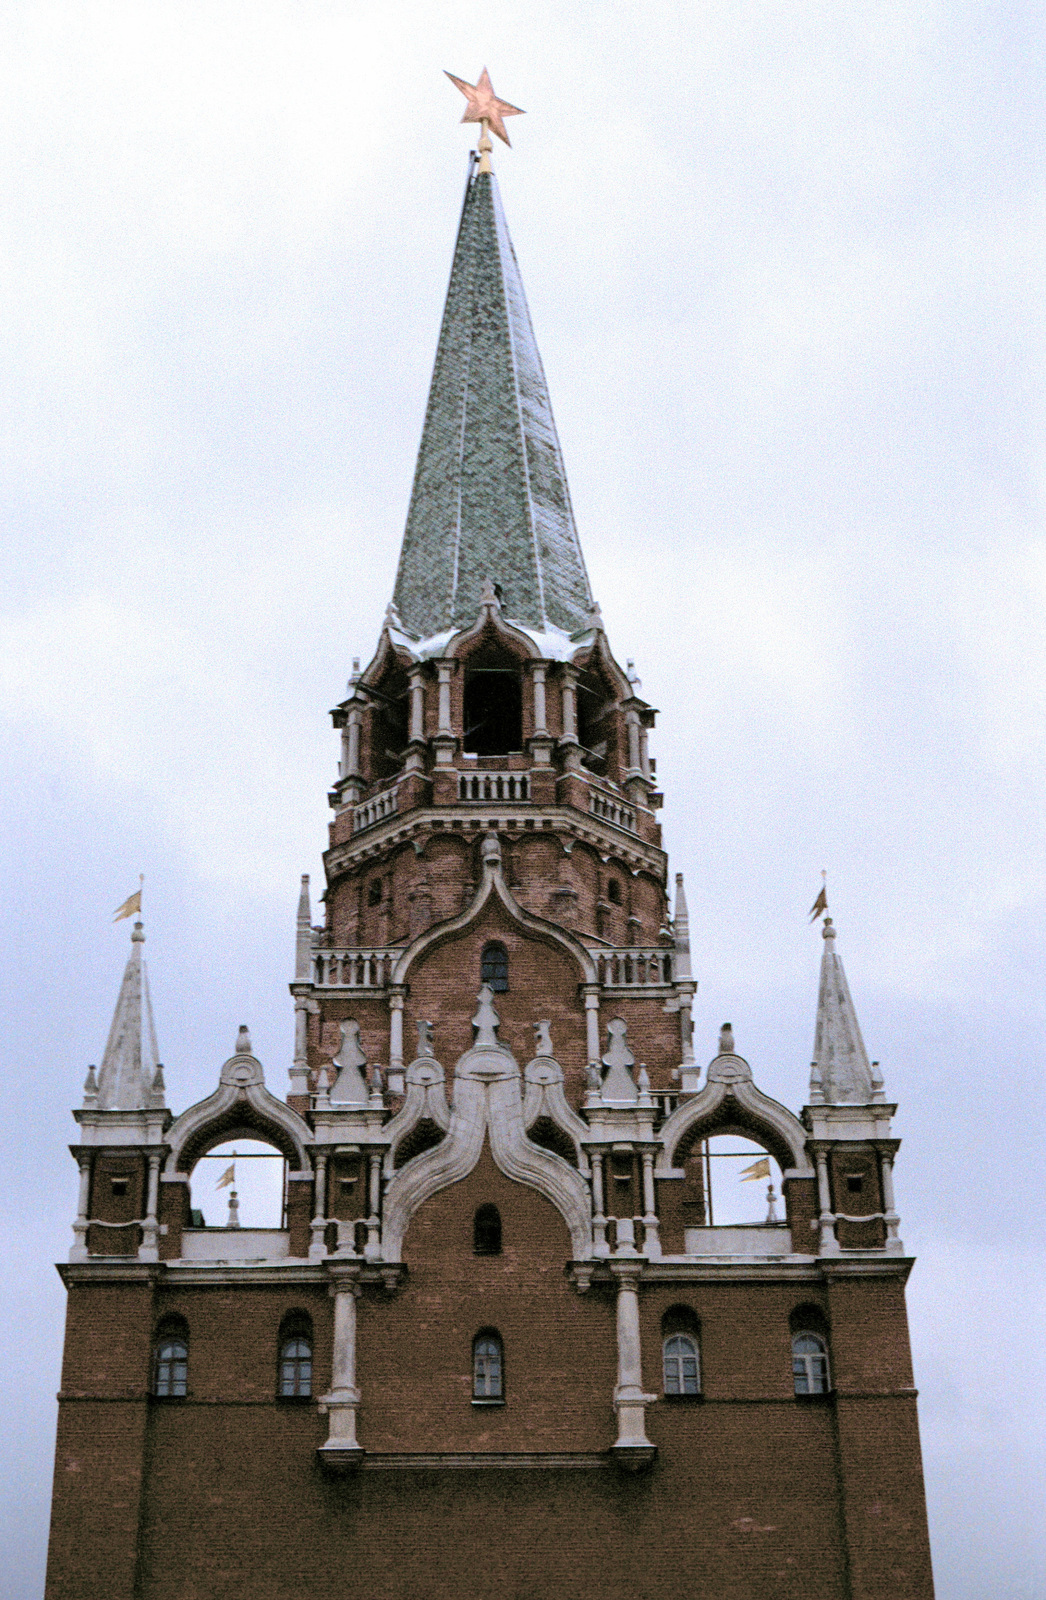 A red star adorns the top of the steeple over the Kremlin gate